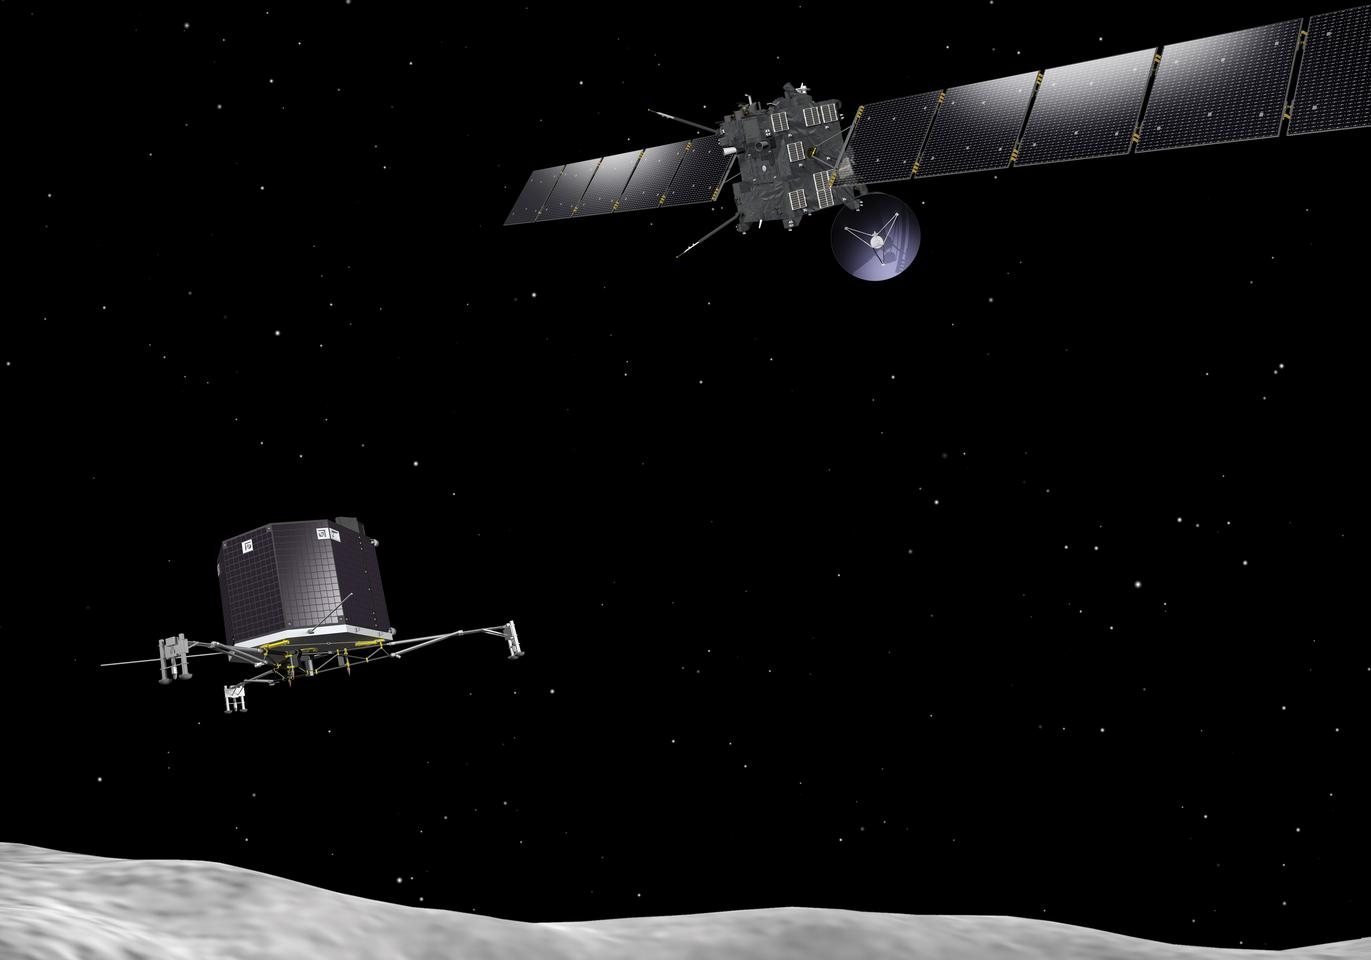 Artist's impression of Rosetta and Philae (Image: ESA)